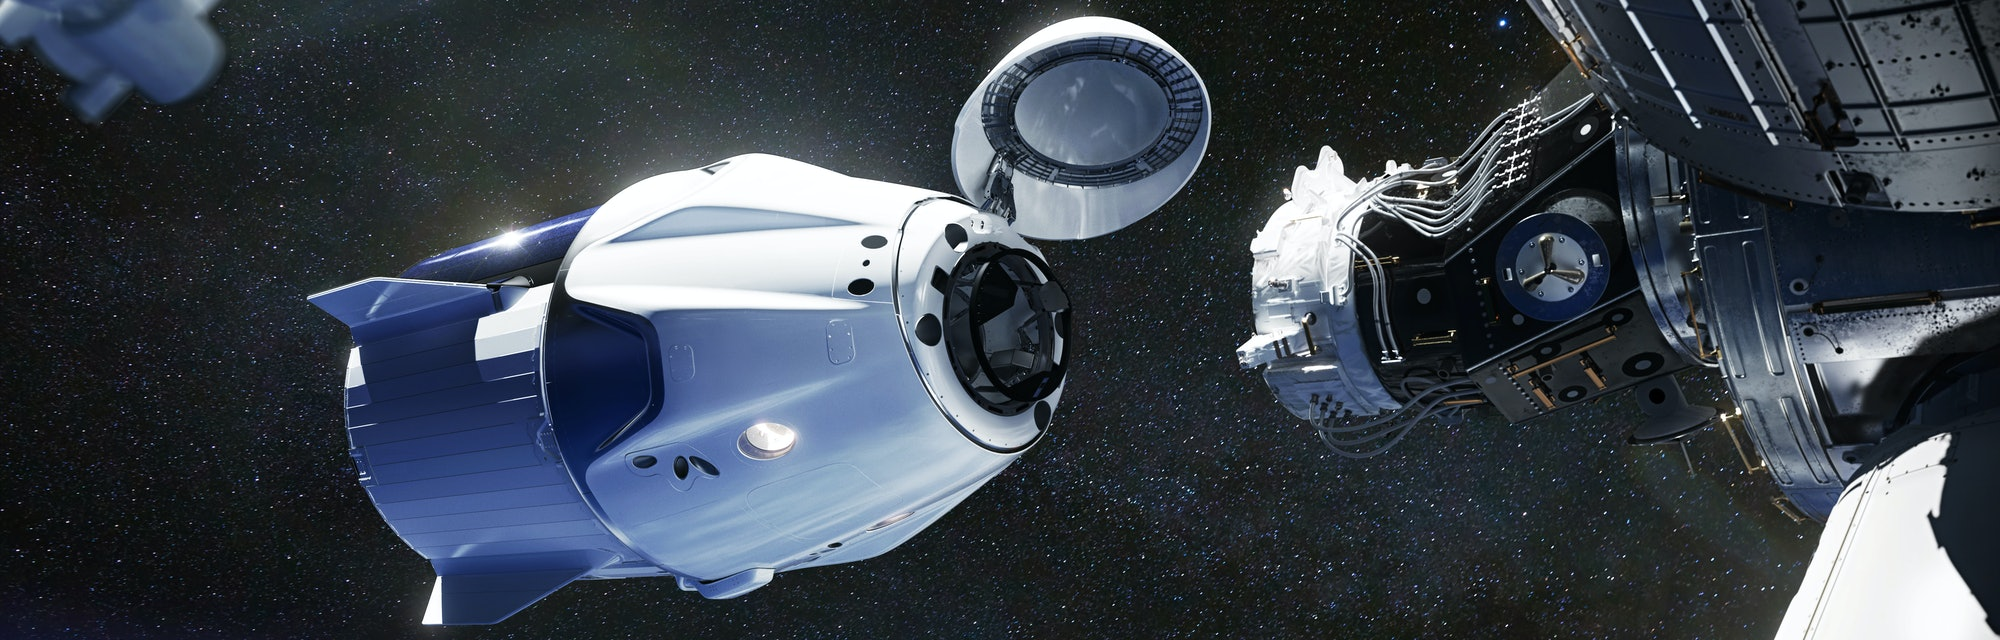 Inspiration20 mission reveals an unexpected purpose for SpaceX Crew ...